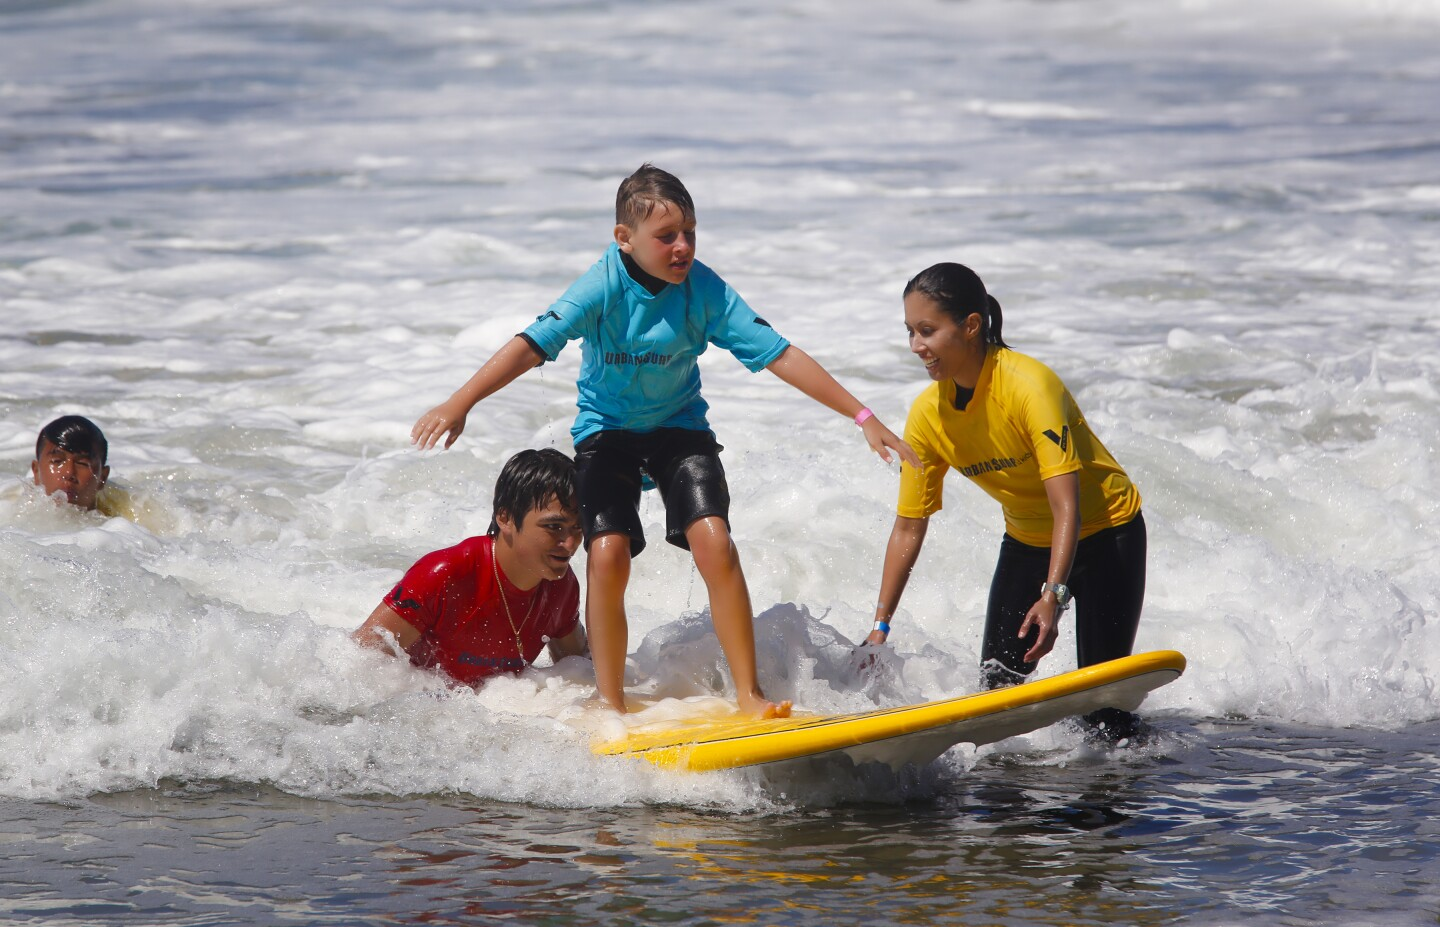 Logan Fischer, 9 from Prescott Valley Arizona enjoyed his second year at the annual Blind Surf event held at South Ponto State Beach in Carlsbad on Sunday.